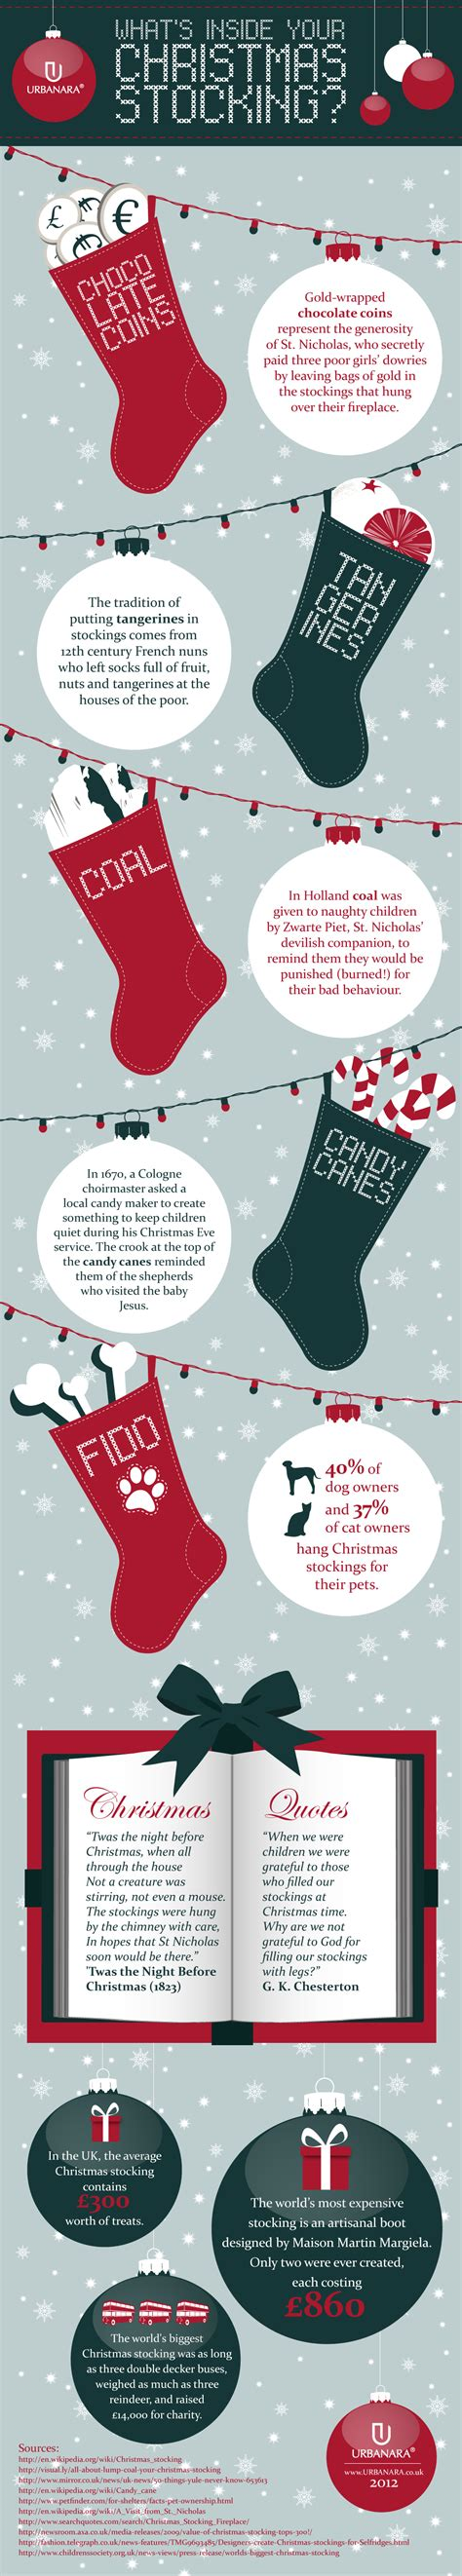 a history of christmas through gifts infographic